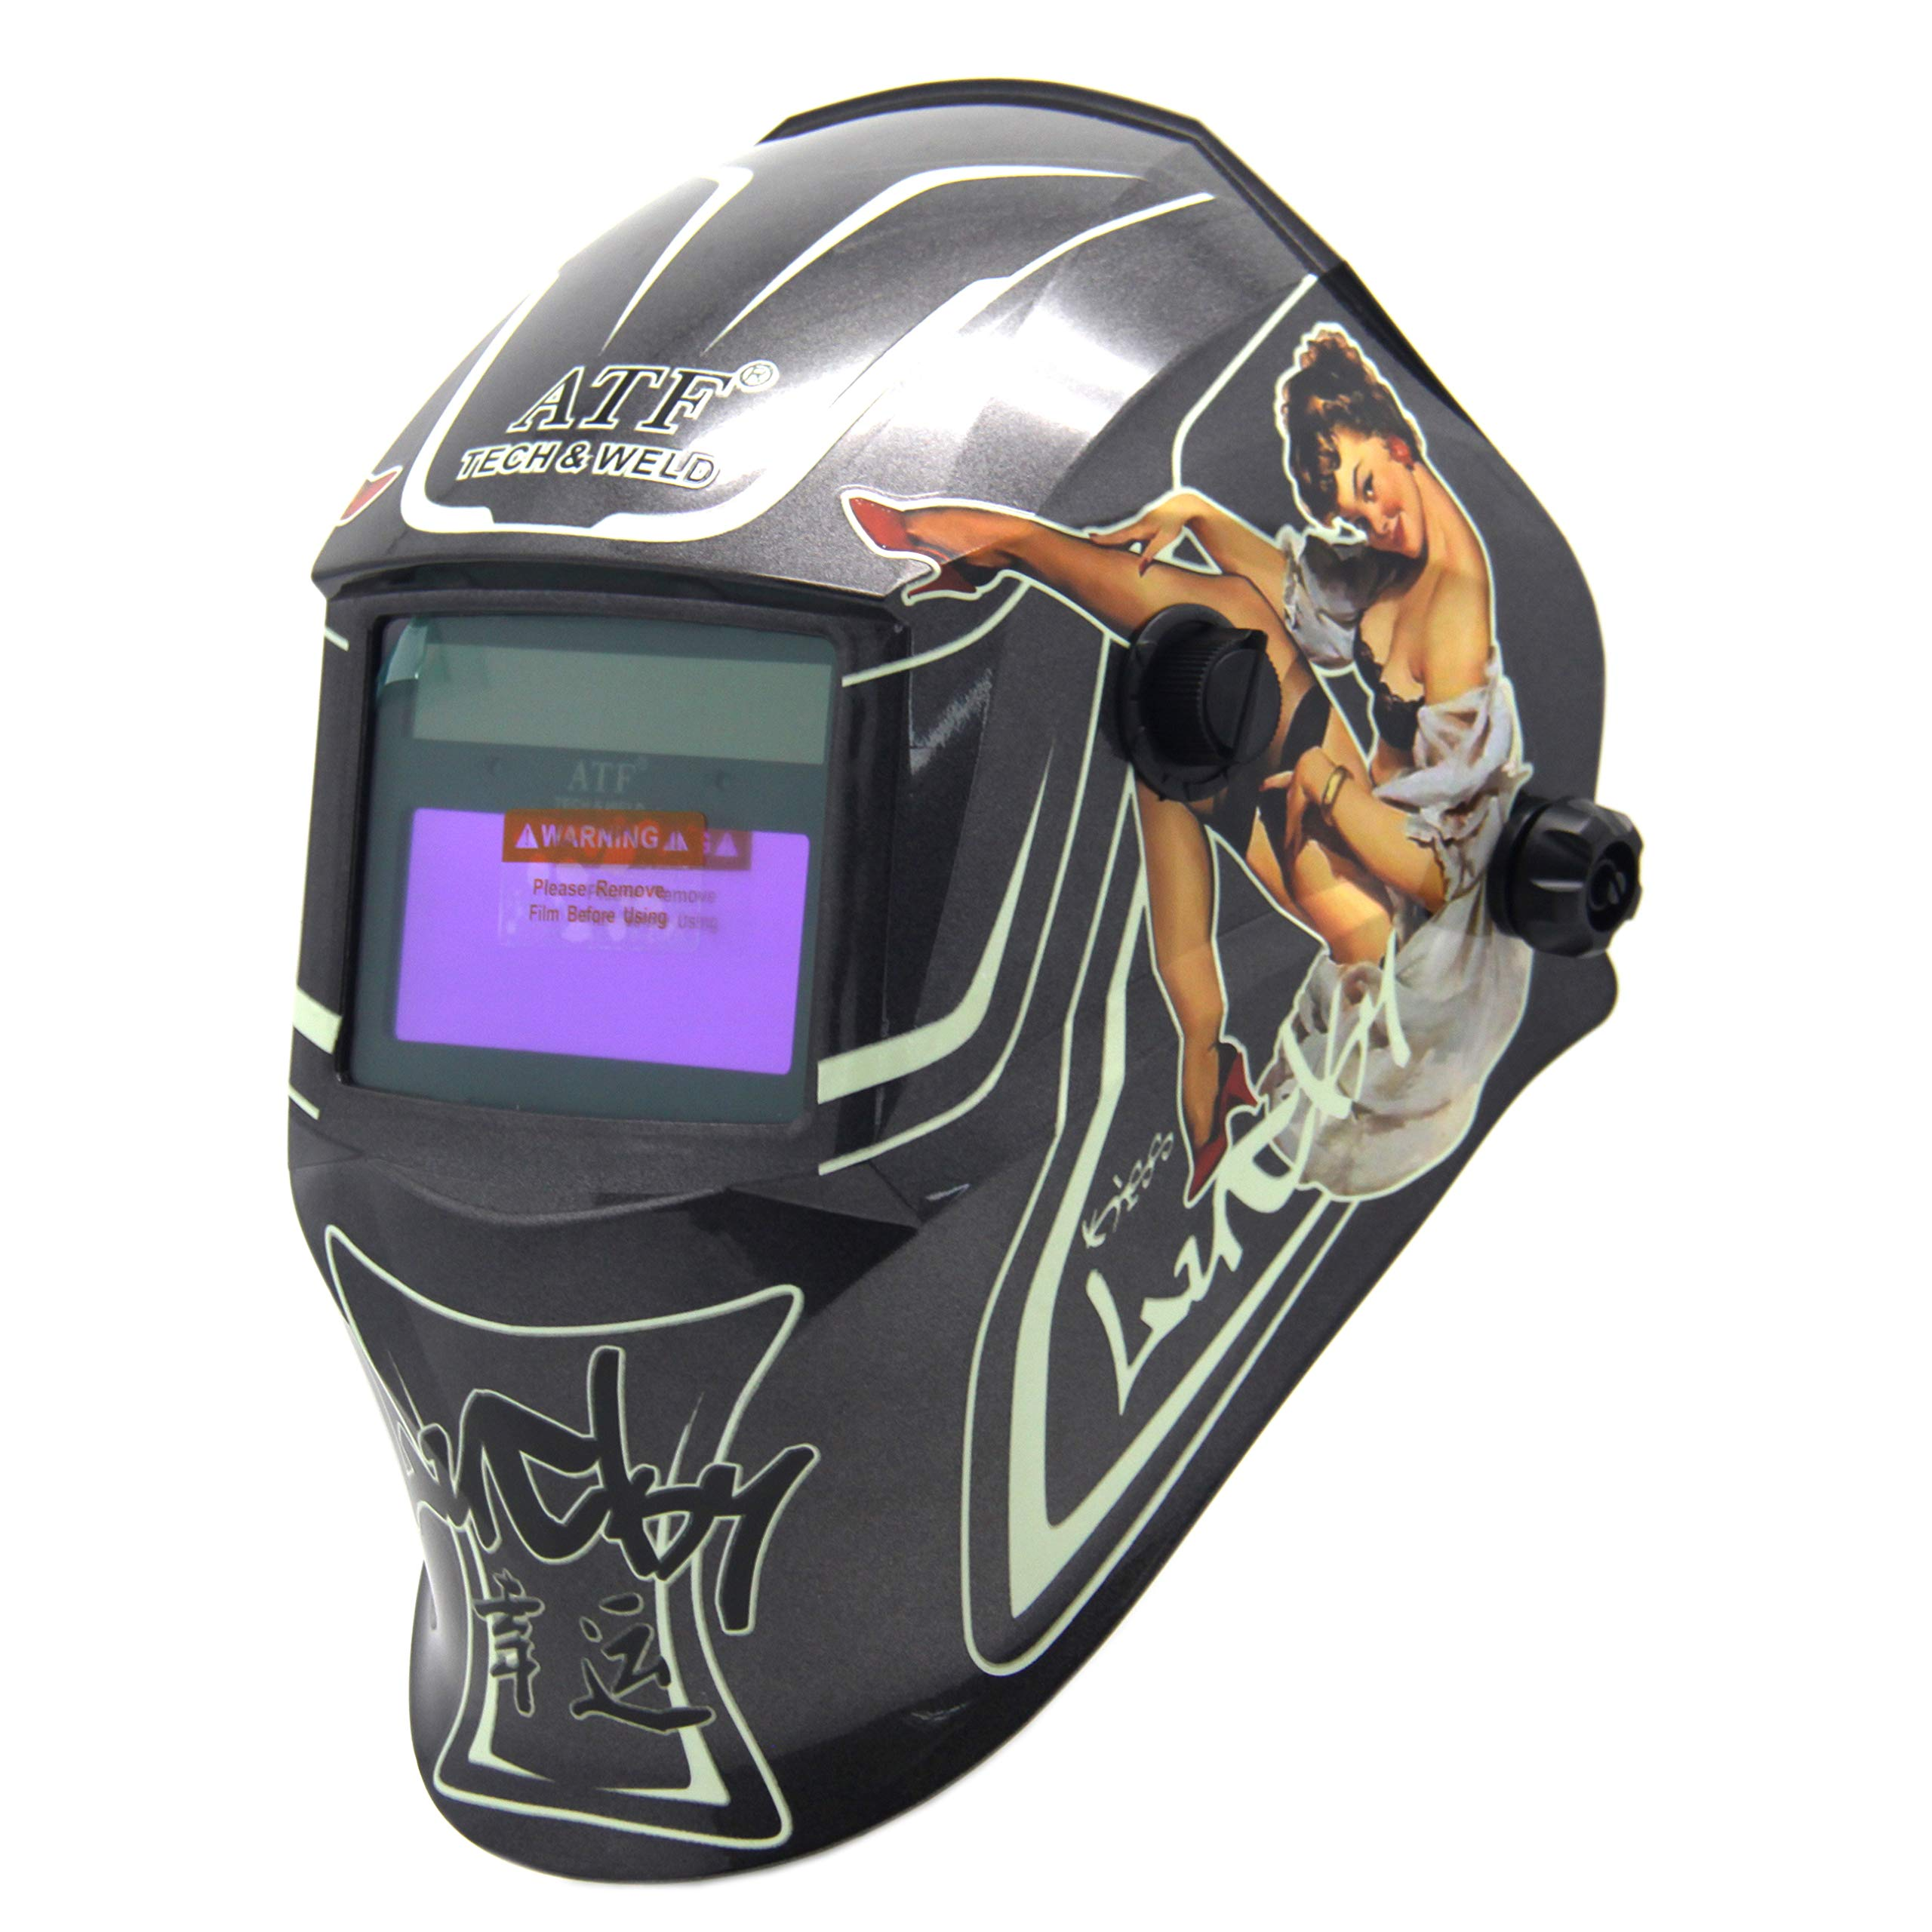 ATF Solar Powered Auto Darkening Welding Helmet Luminous and Ultra High Definition Welding Hood With Adjustable Shade Range DIN4/9-13,With +2.00 Magnifying Welding Lens.